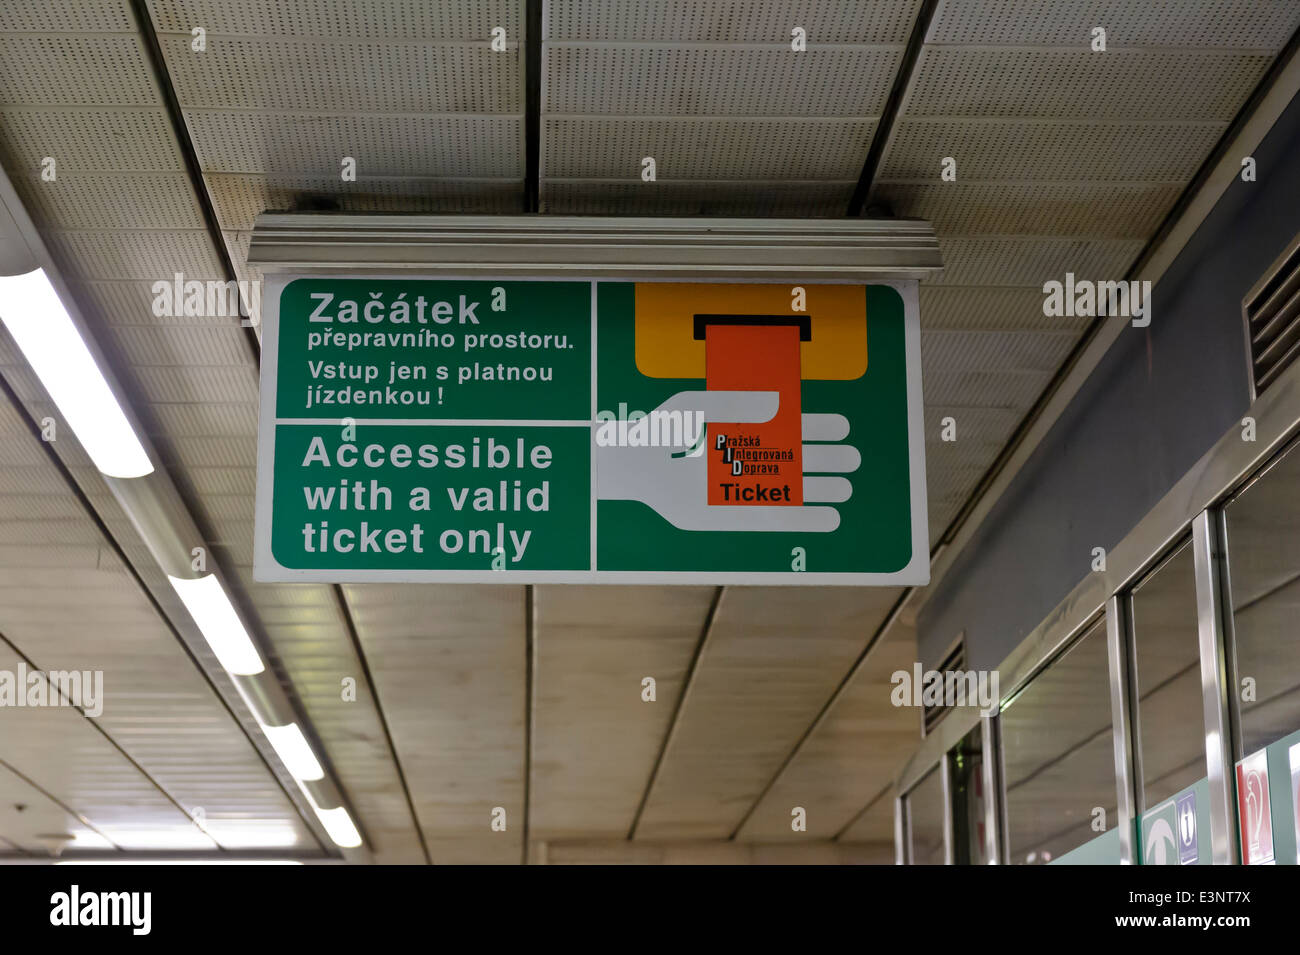 Warning sign to use a valid Metro ticket, Prague, Czech Republic. - Stock Image